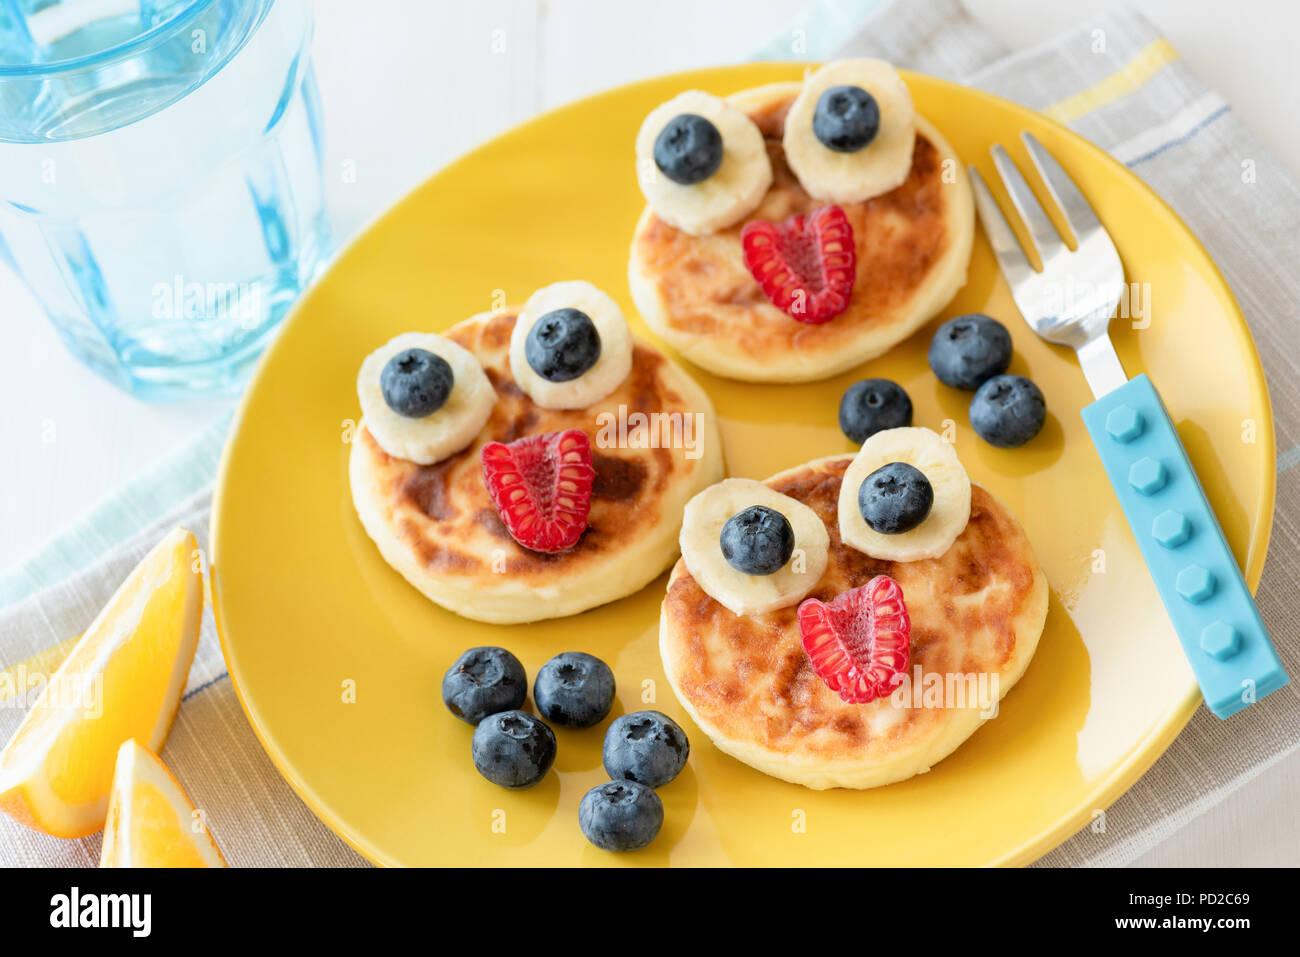 Fun food for kids. Pancakes with funny animal faces on colorful yellow plate. Kids meal. Selective focus Stock Photo